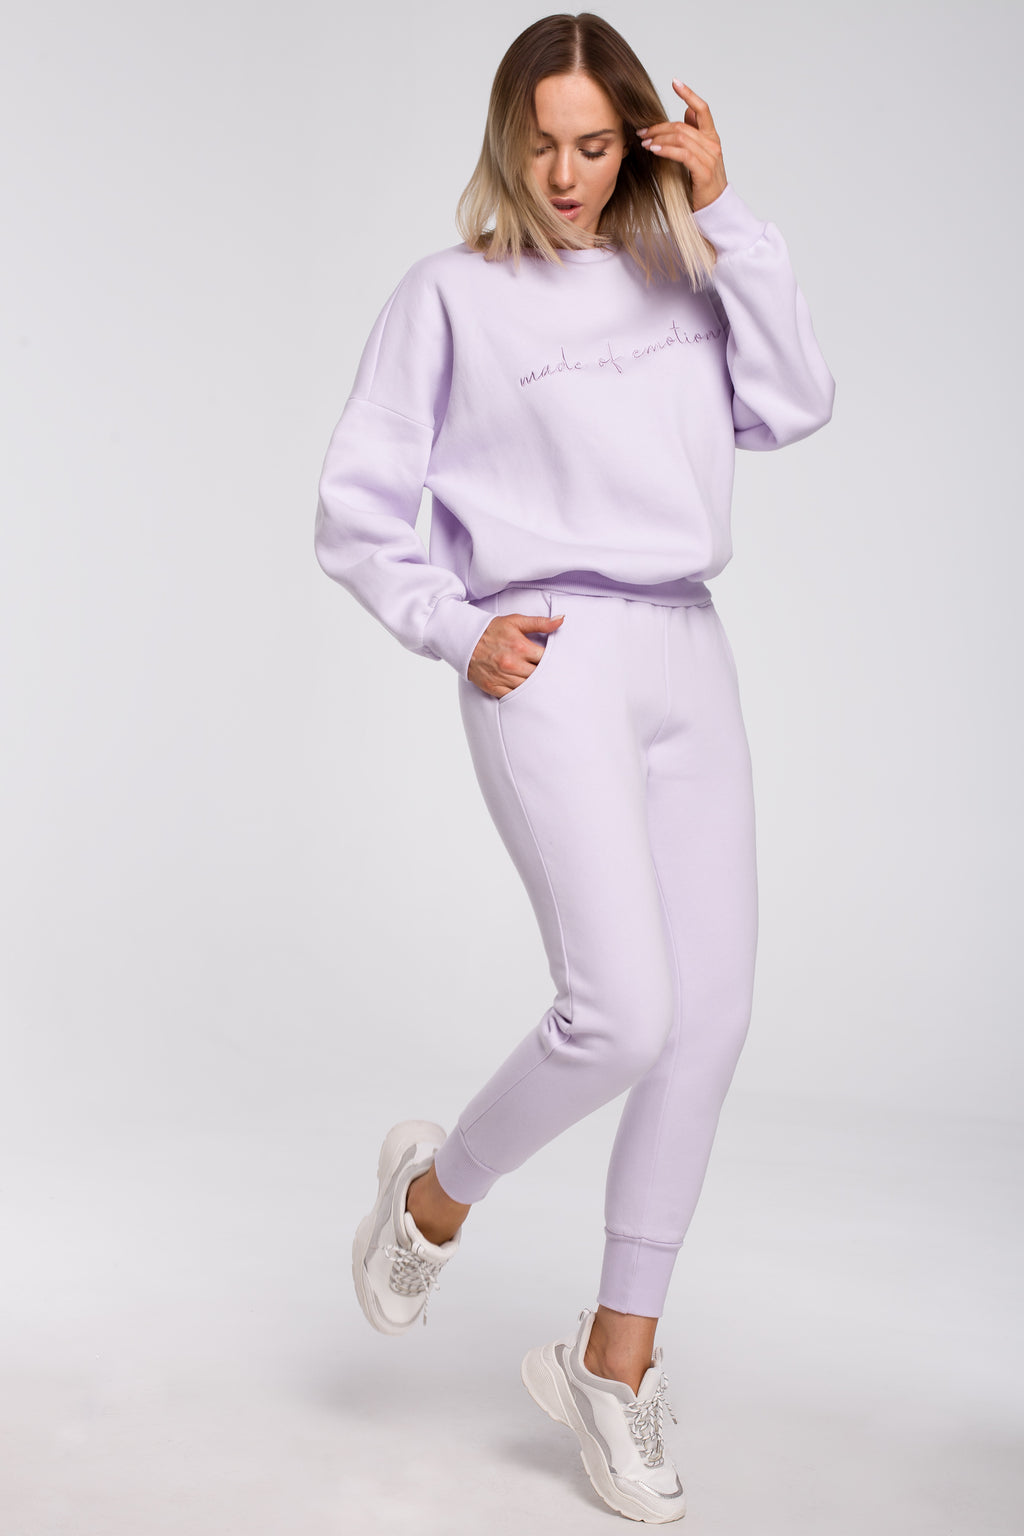 Lilac Joggers With Elastic Waist - So Chic Boutique